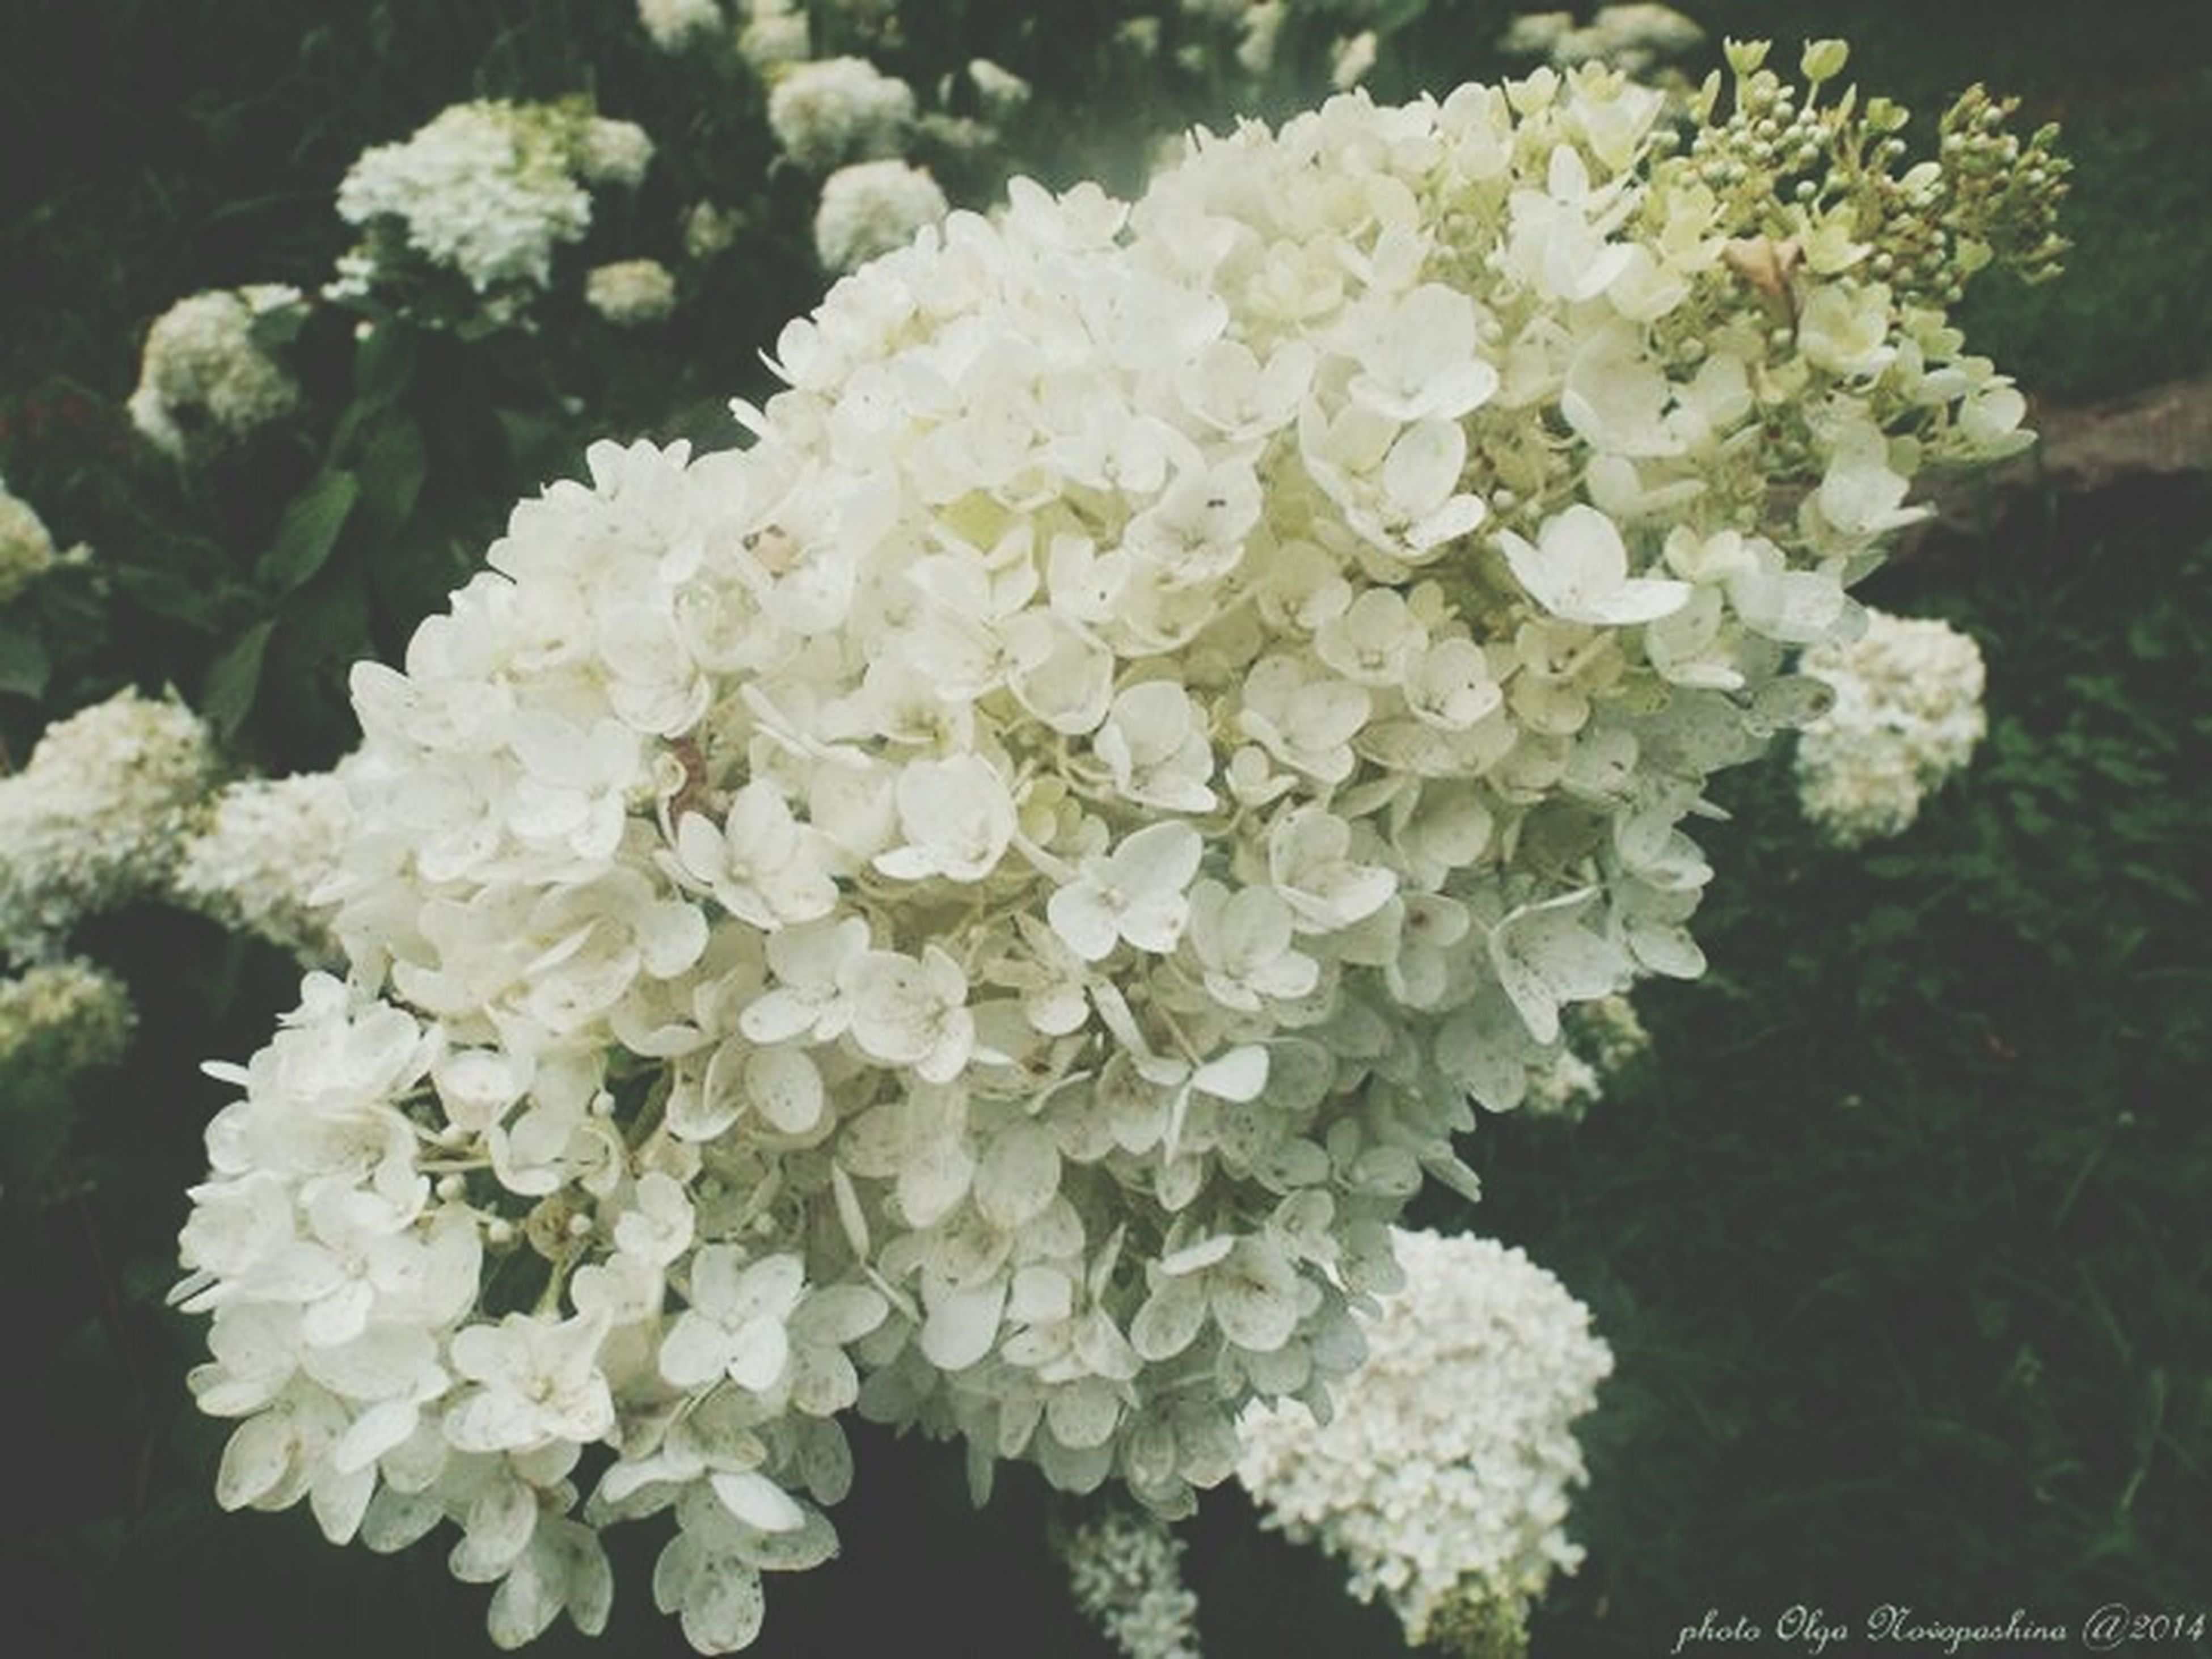 flower, freshness, fragility, petal, growth, beauty in nature, white color, flower head, blooming, nature, plant, close-up, high angle view, in bloom, blossom, bunch of flowers, focus on foreground, leaf, botany, park - man made space